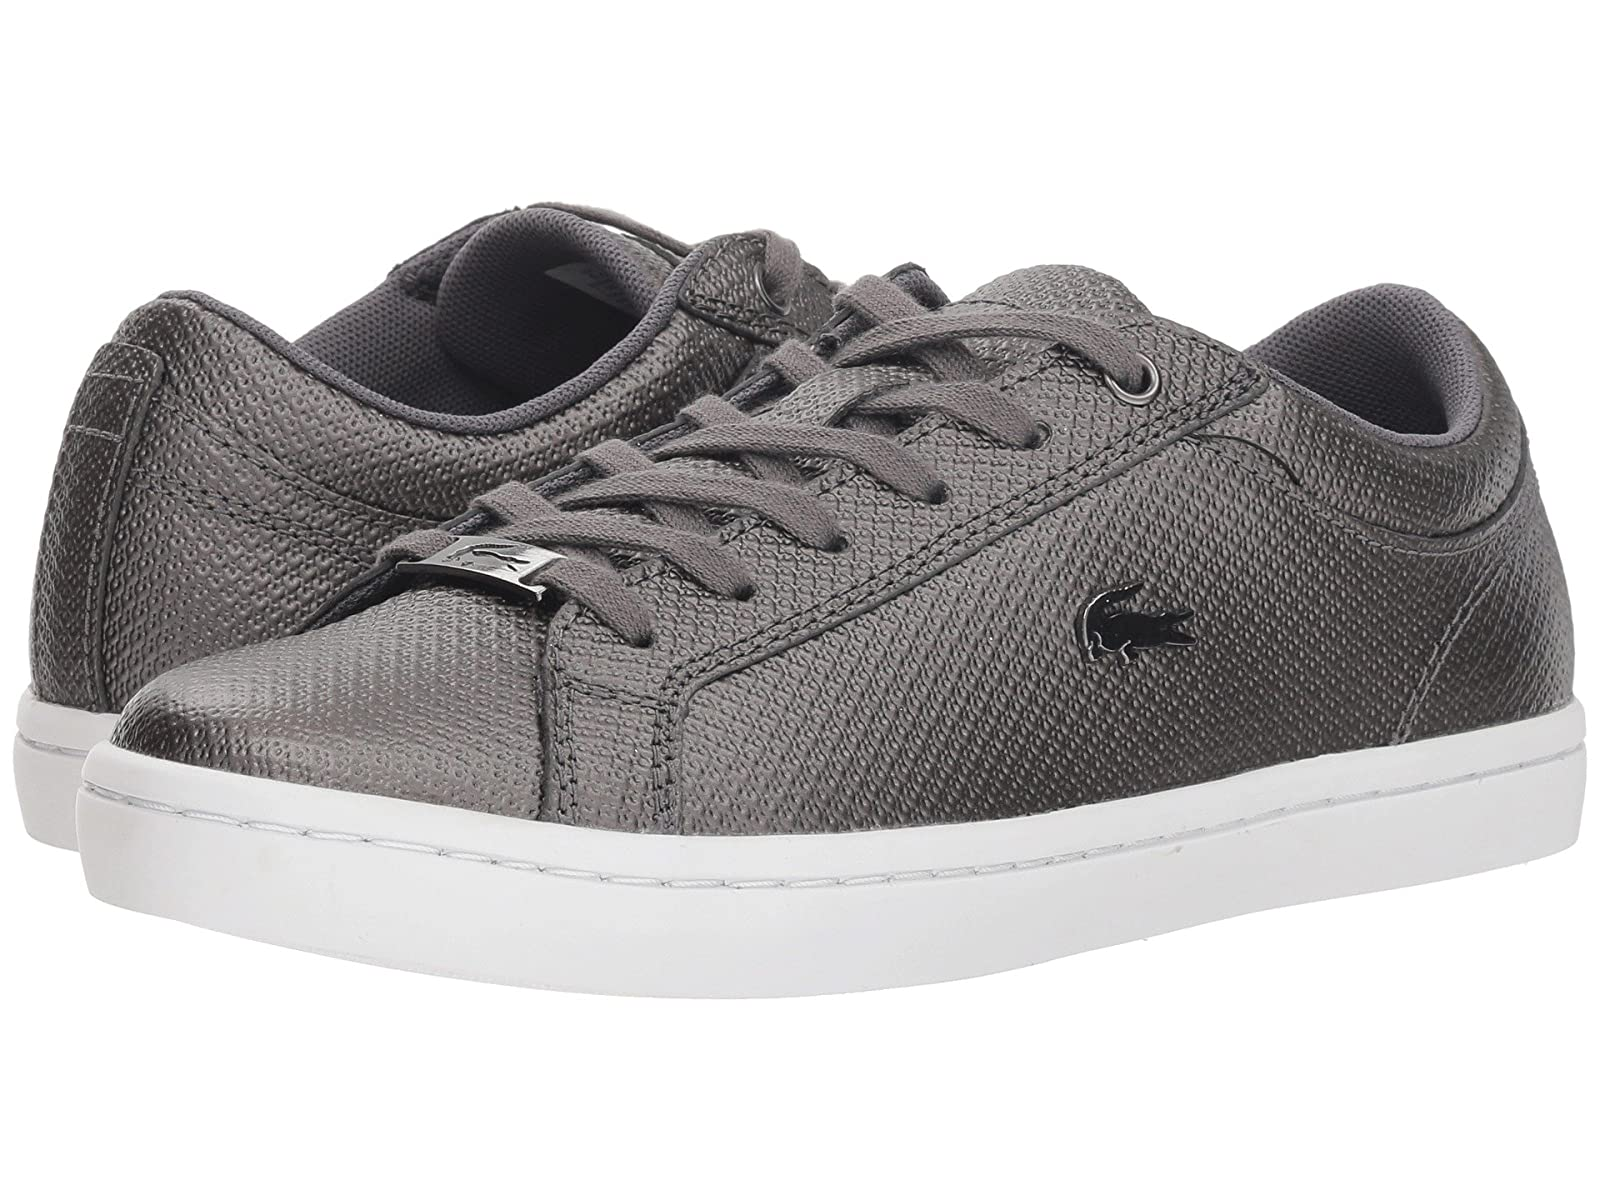 Lacoste Straightset 318 2Atmospheric grades have affordable shoes